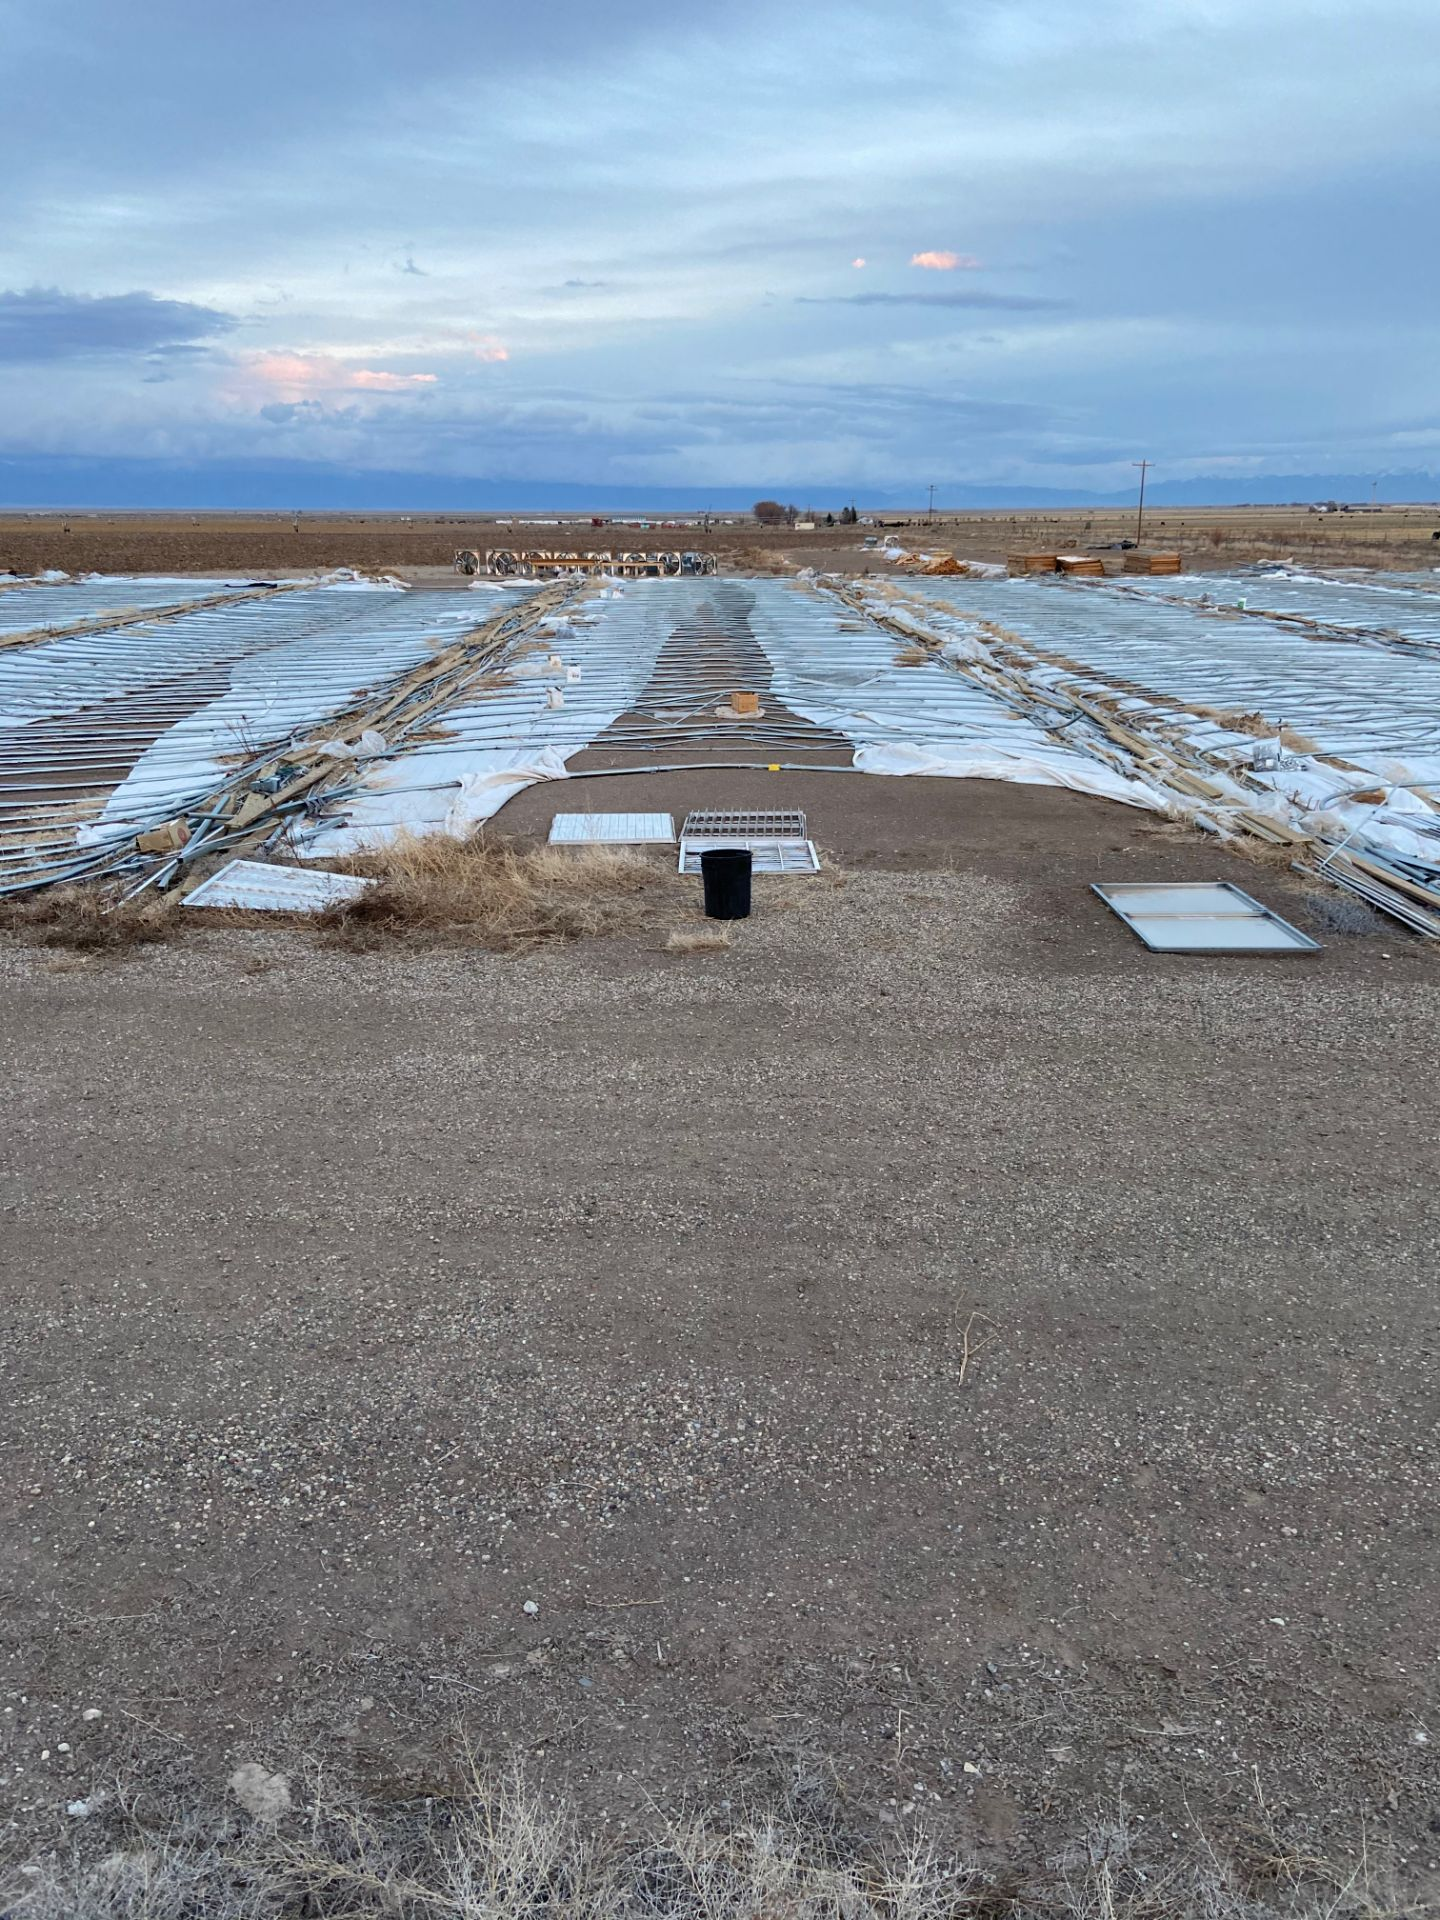 Scenic Acres Greenhouse Mfg Greenhouse w/ Four Exhaust Fans and Two Heaters, 34' x 200' gothic hoop - Image 2 of 10